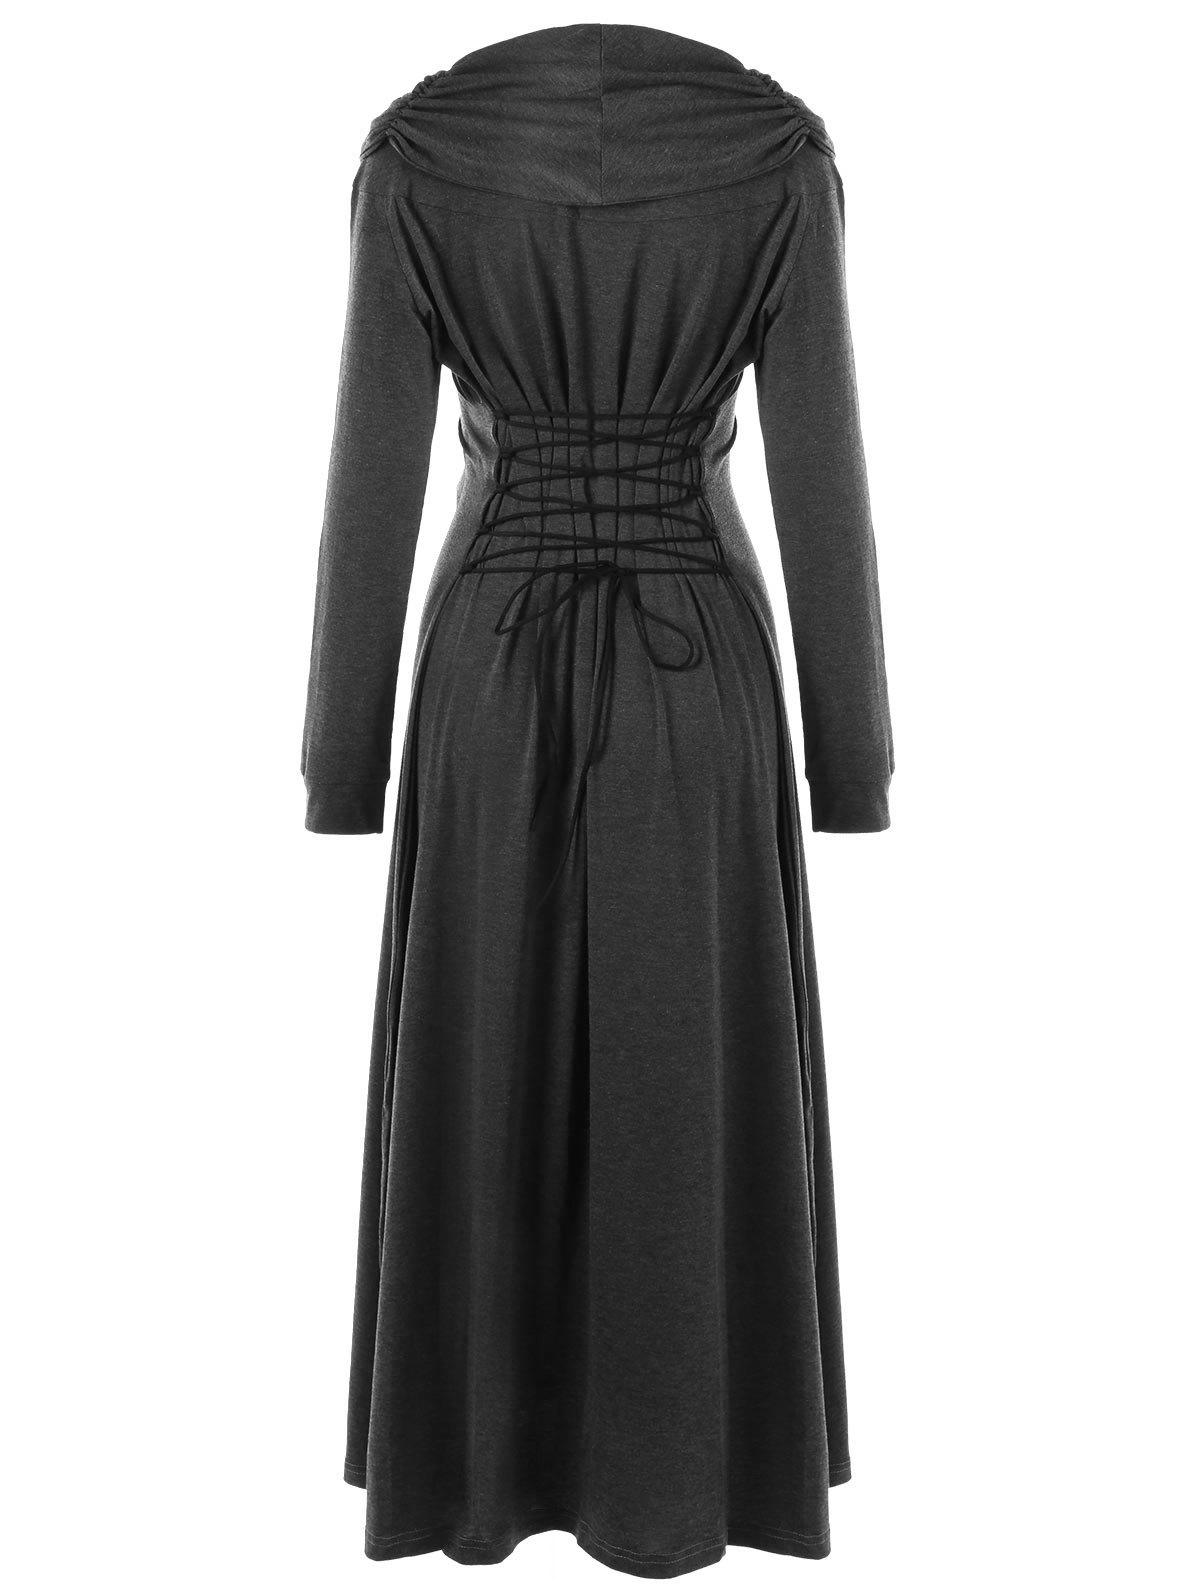 Lace Insert Lace Up Maxi Dress - DEEP GRAY M